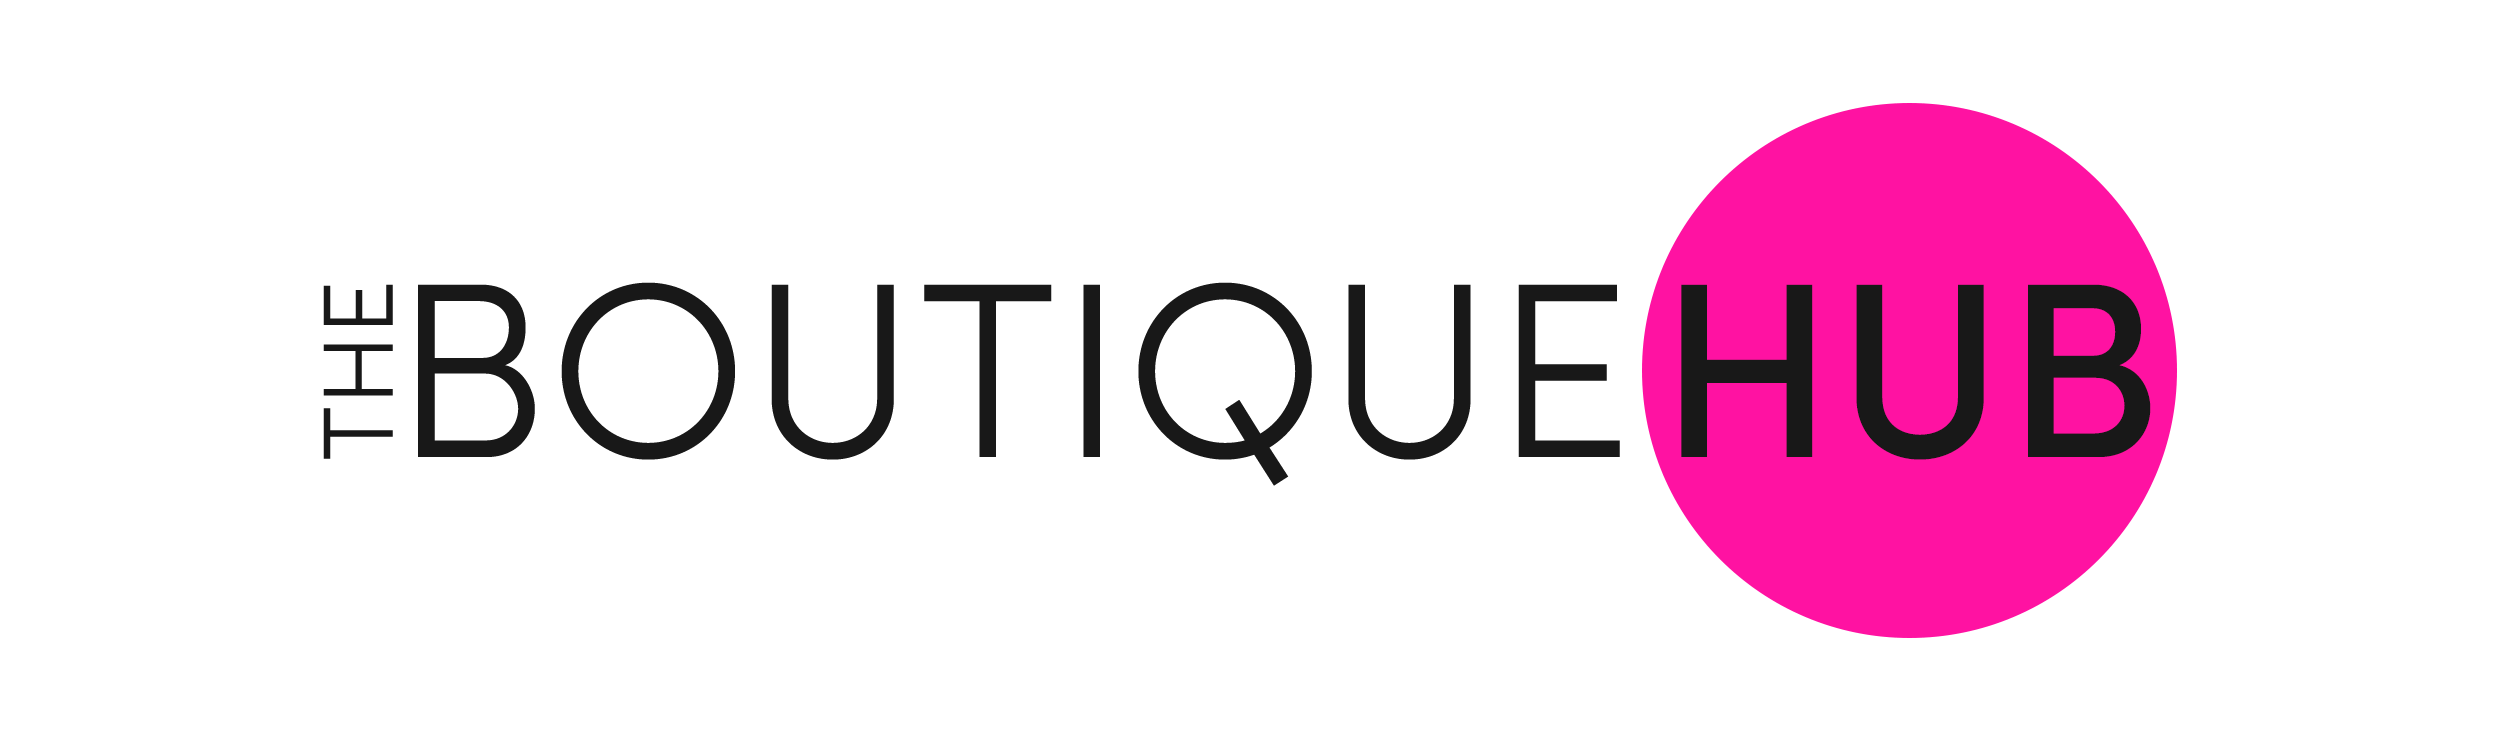 The Boutique Hub   Western Summit   January 10, 2019 in Denver, CO